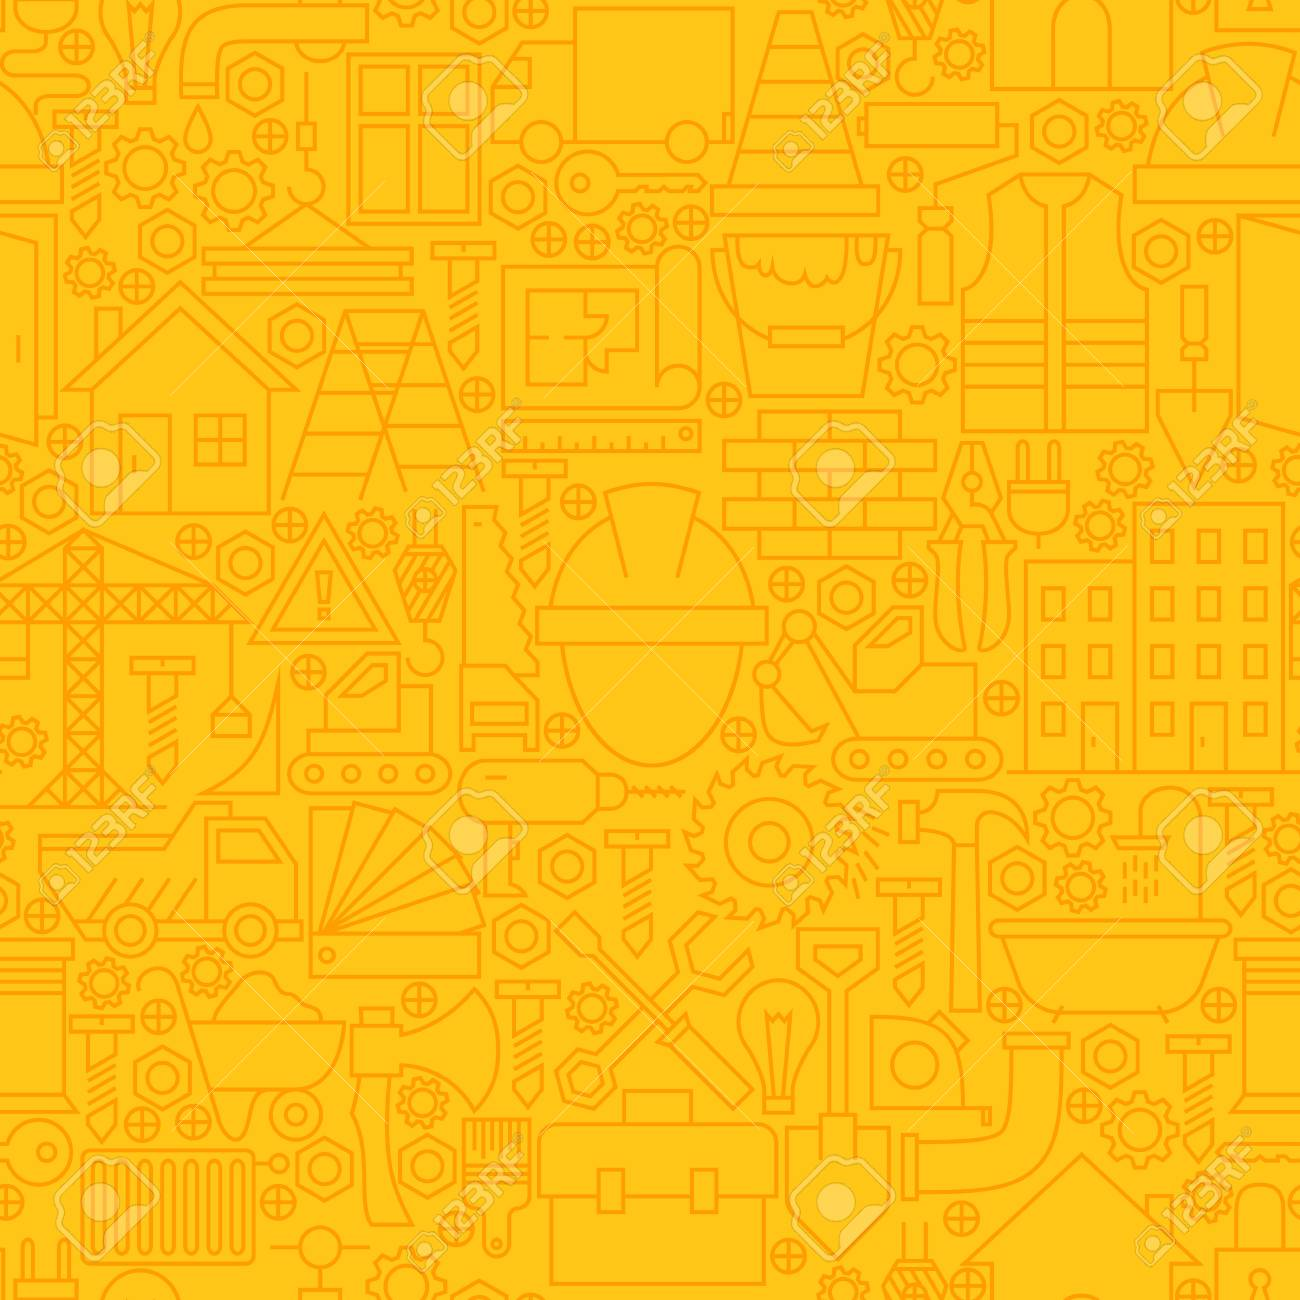 Thin Yellow Construction Line Seamless Pattern Website Design Royalty Free Cliparts Vectors And Stock Illustration Image 54764624